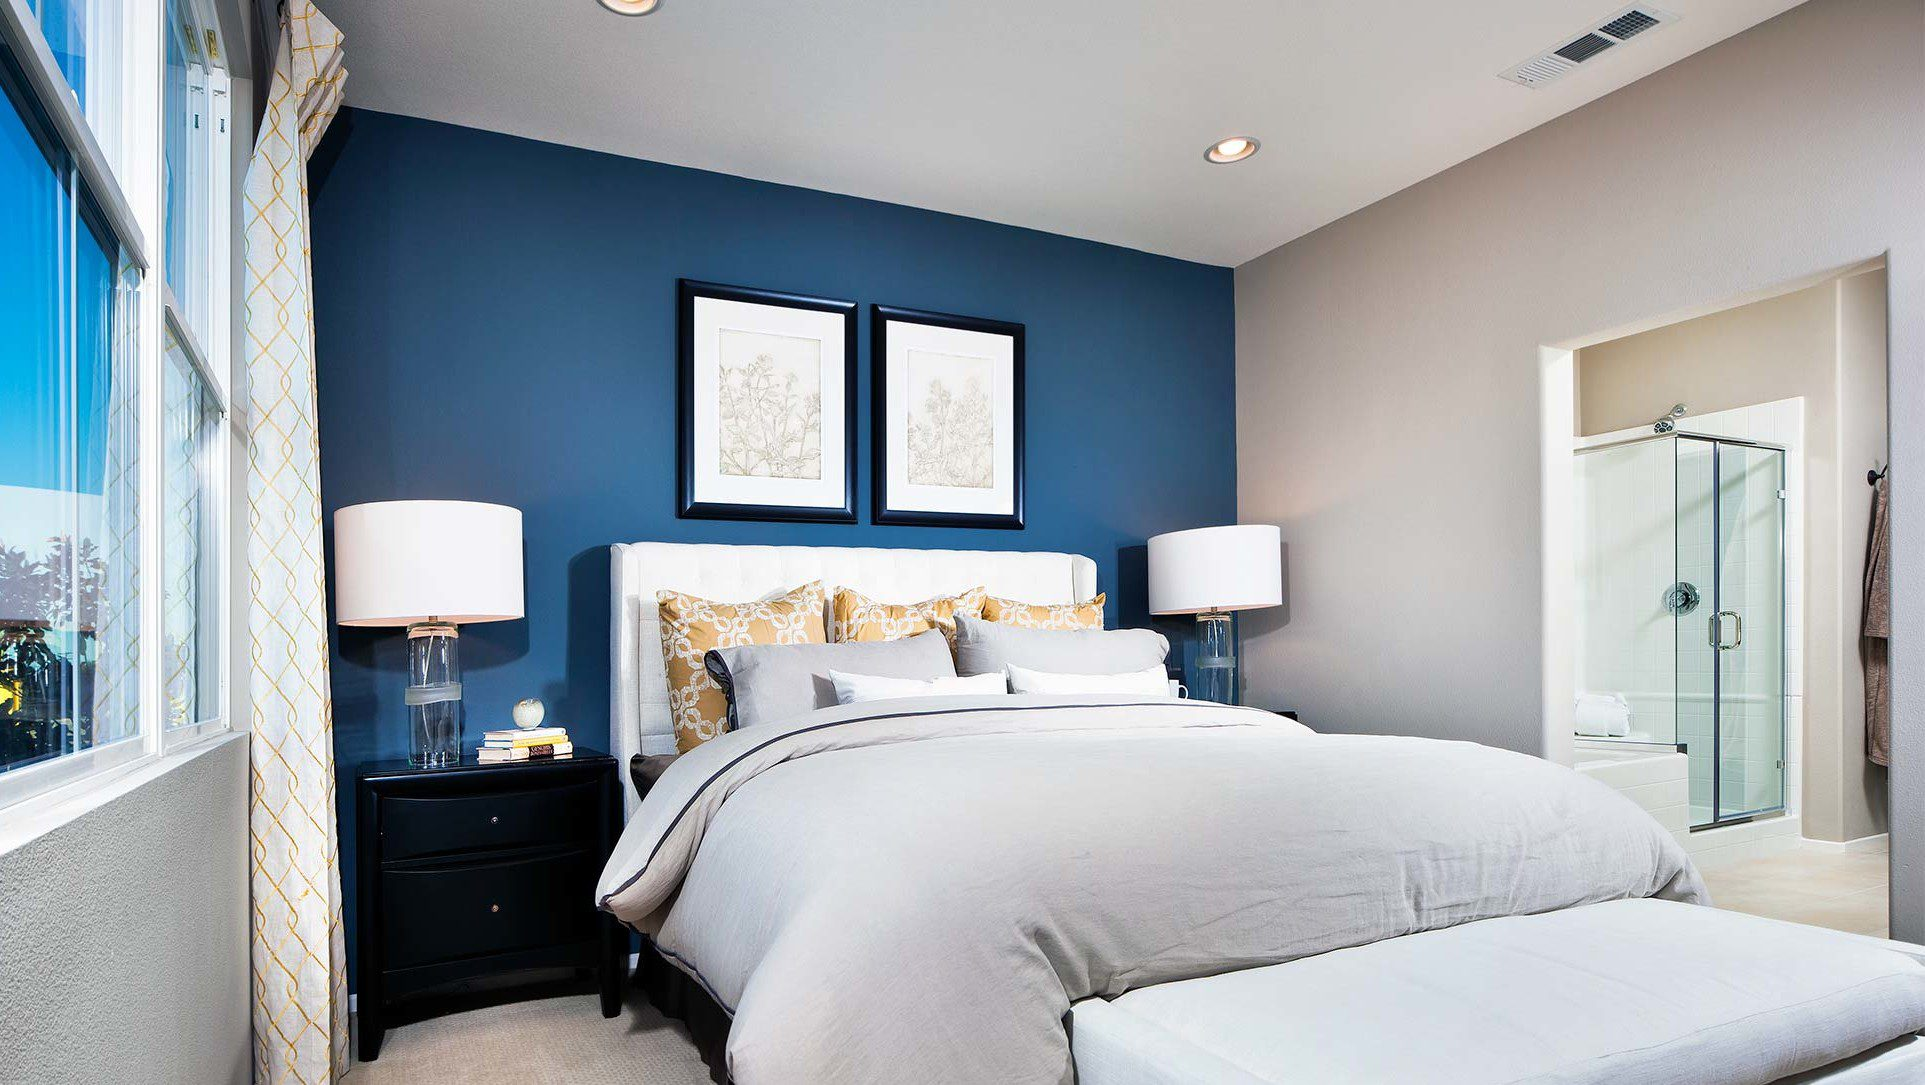 Bedroom Accent Colors You 39re Doing It Wrong Painting An Accent Wall